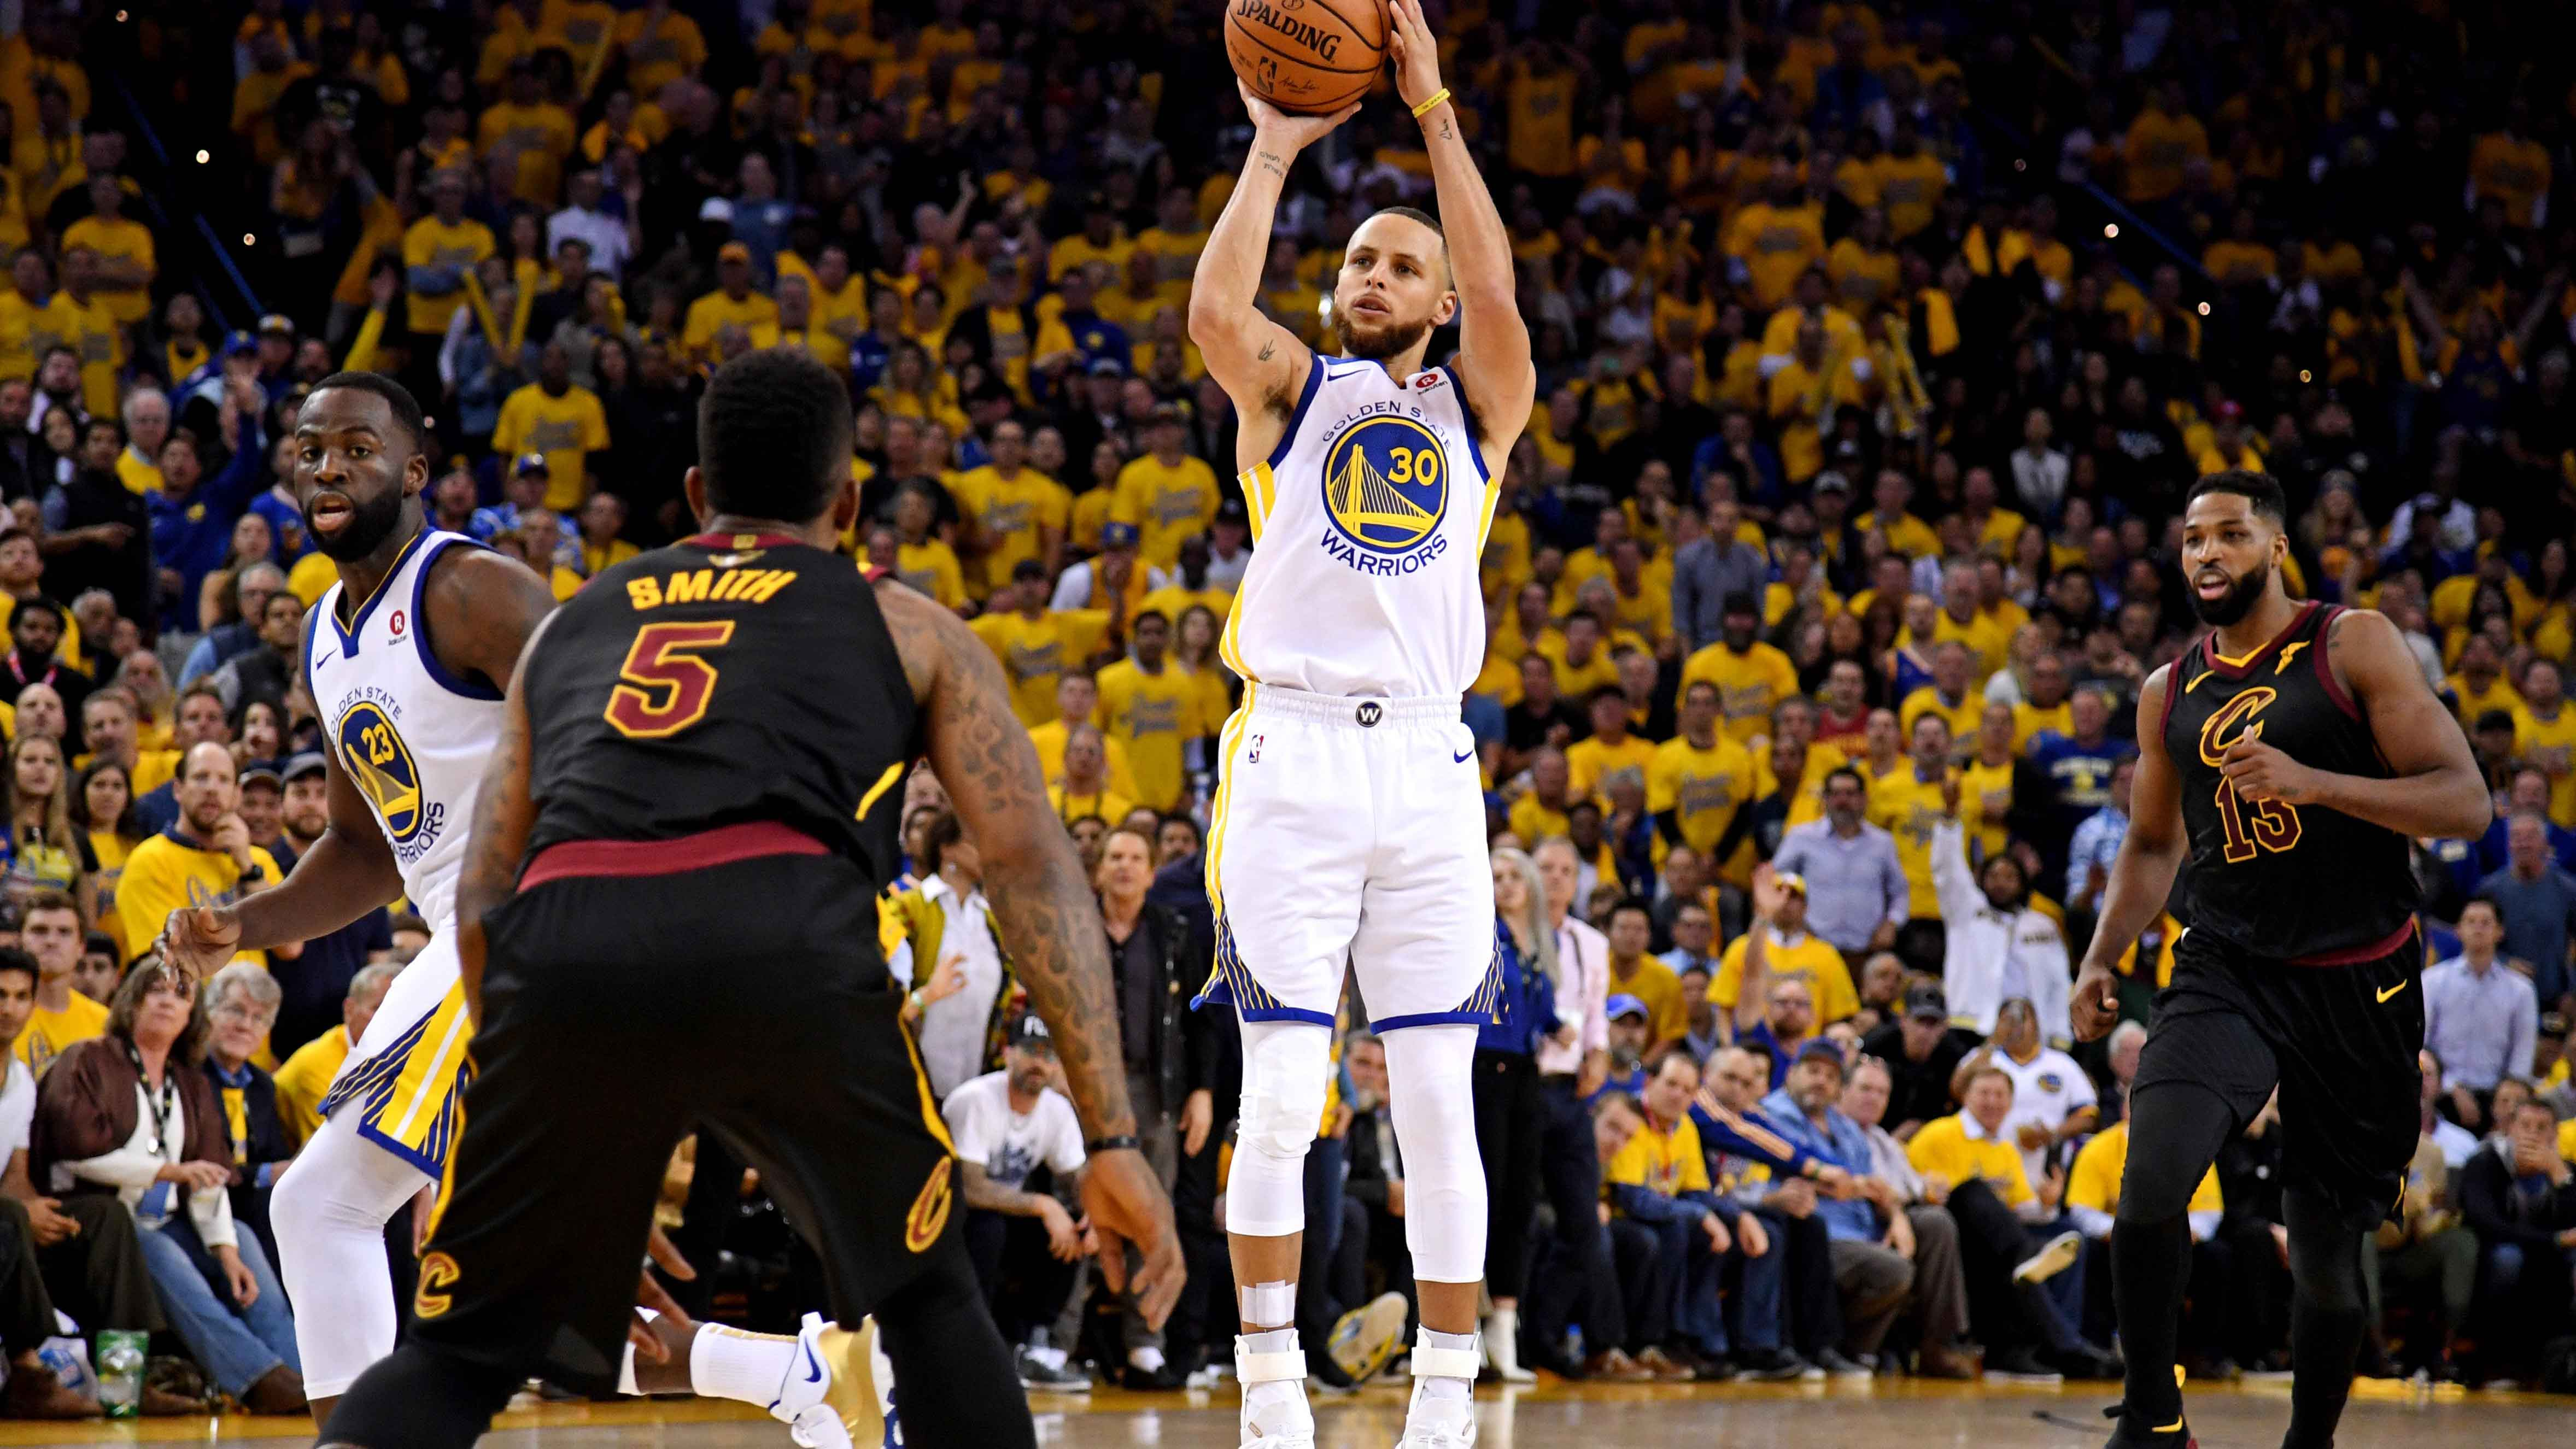 GAME 1 RECAP: Warriors 124, Cavaliers 114